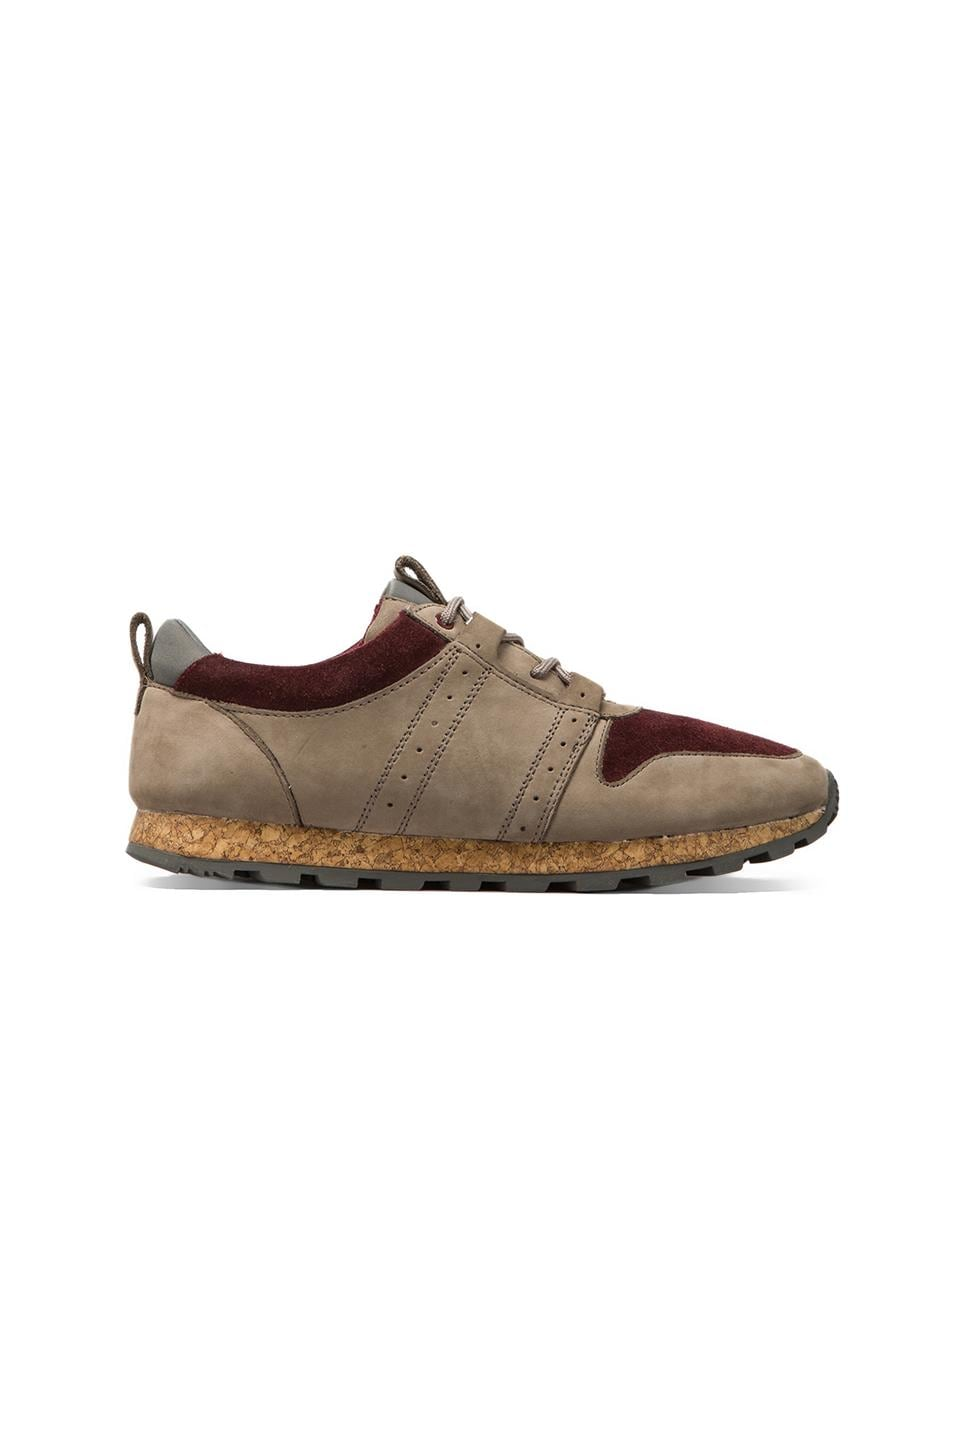 Clae Mills in Taupe Oxblood Suede